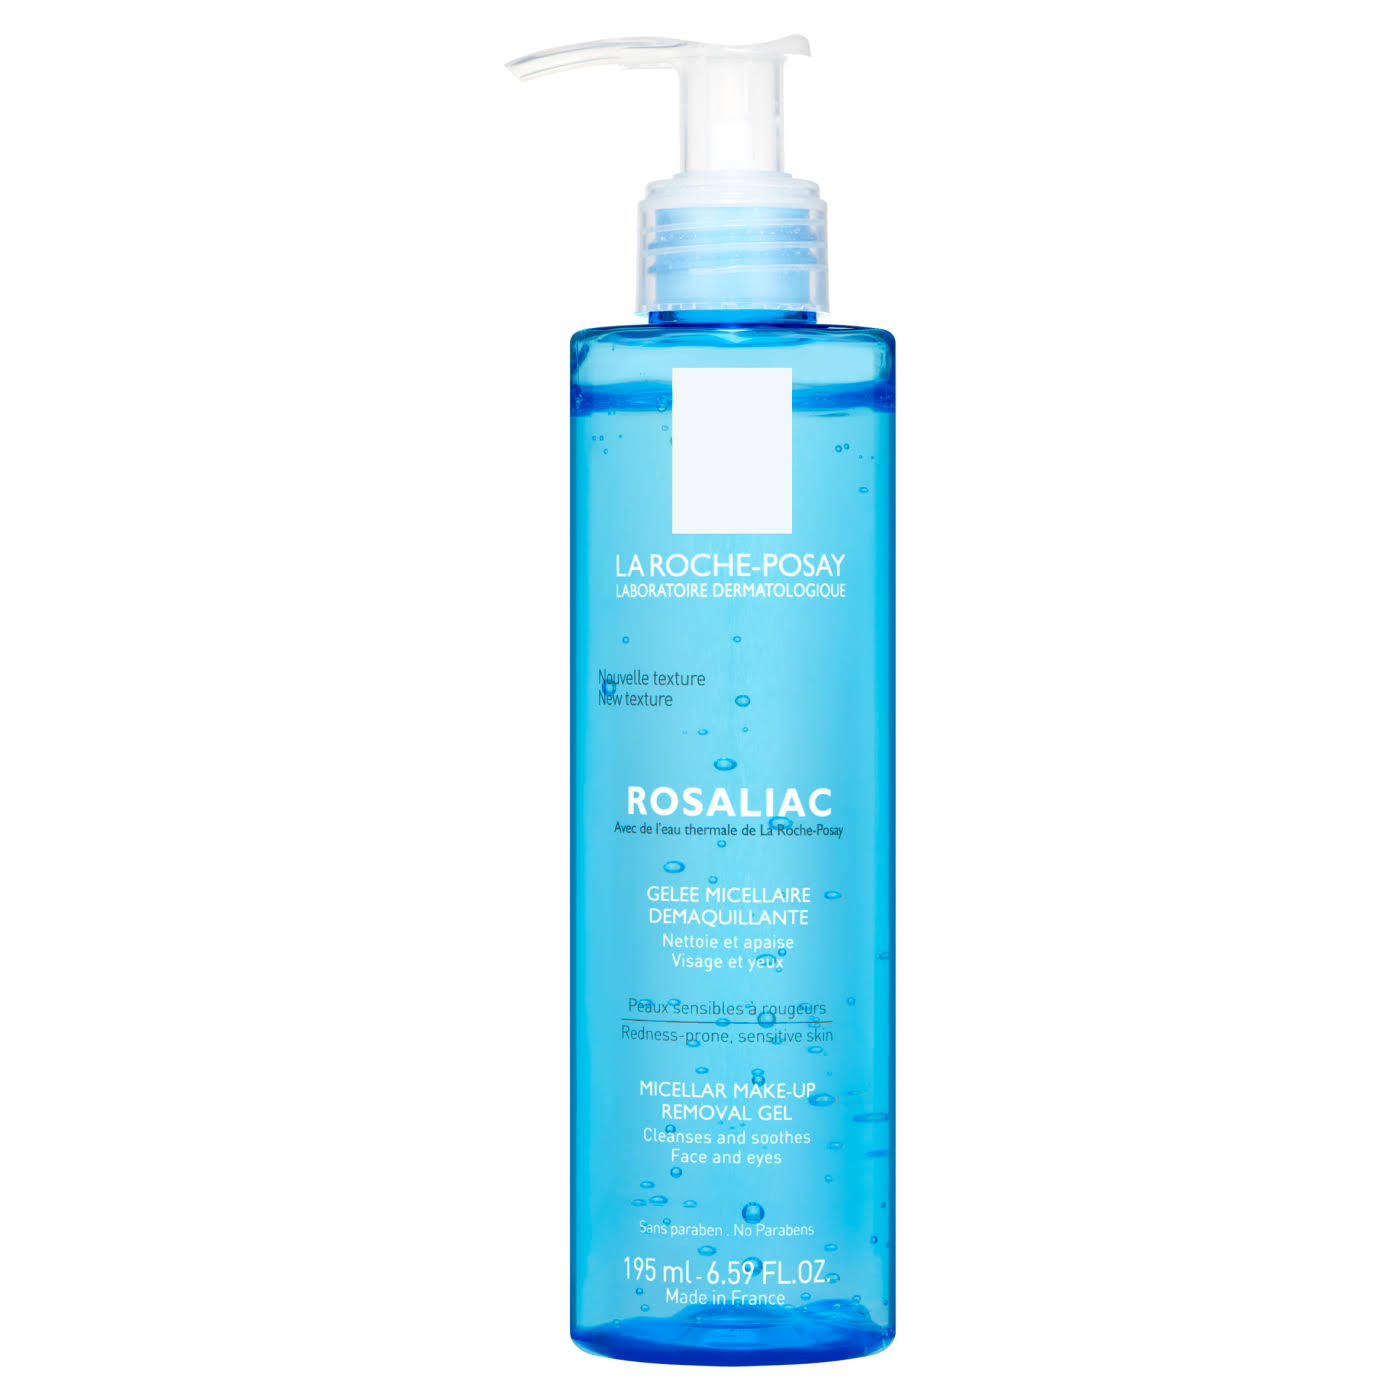 La Roche Posay Rosaliac Micellar Make Up Remover Gel - 195ml